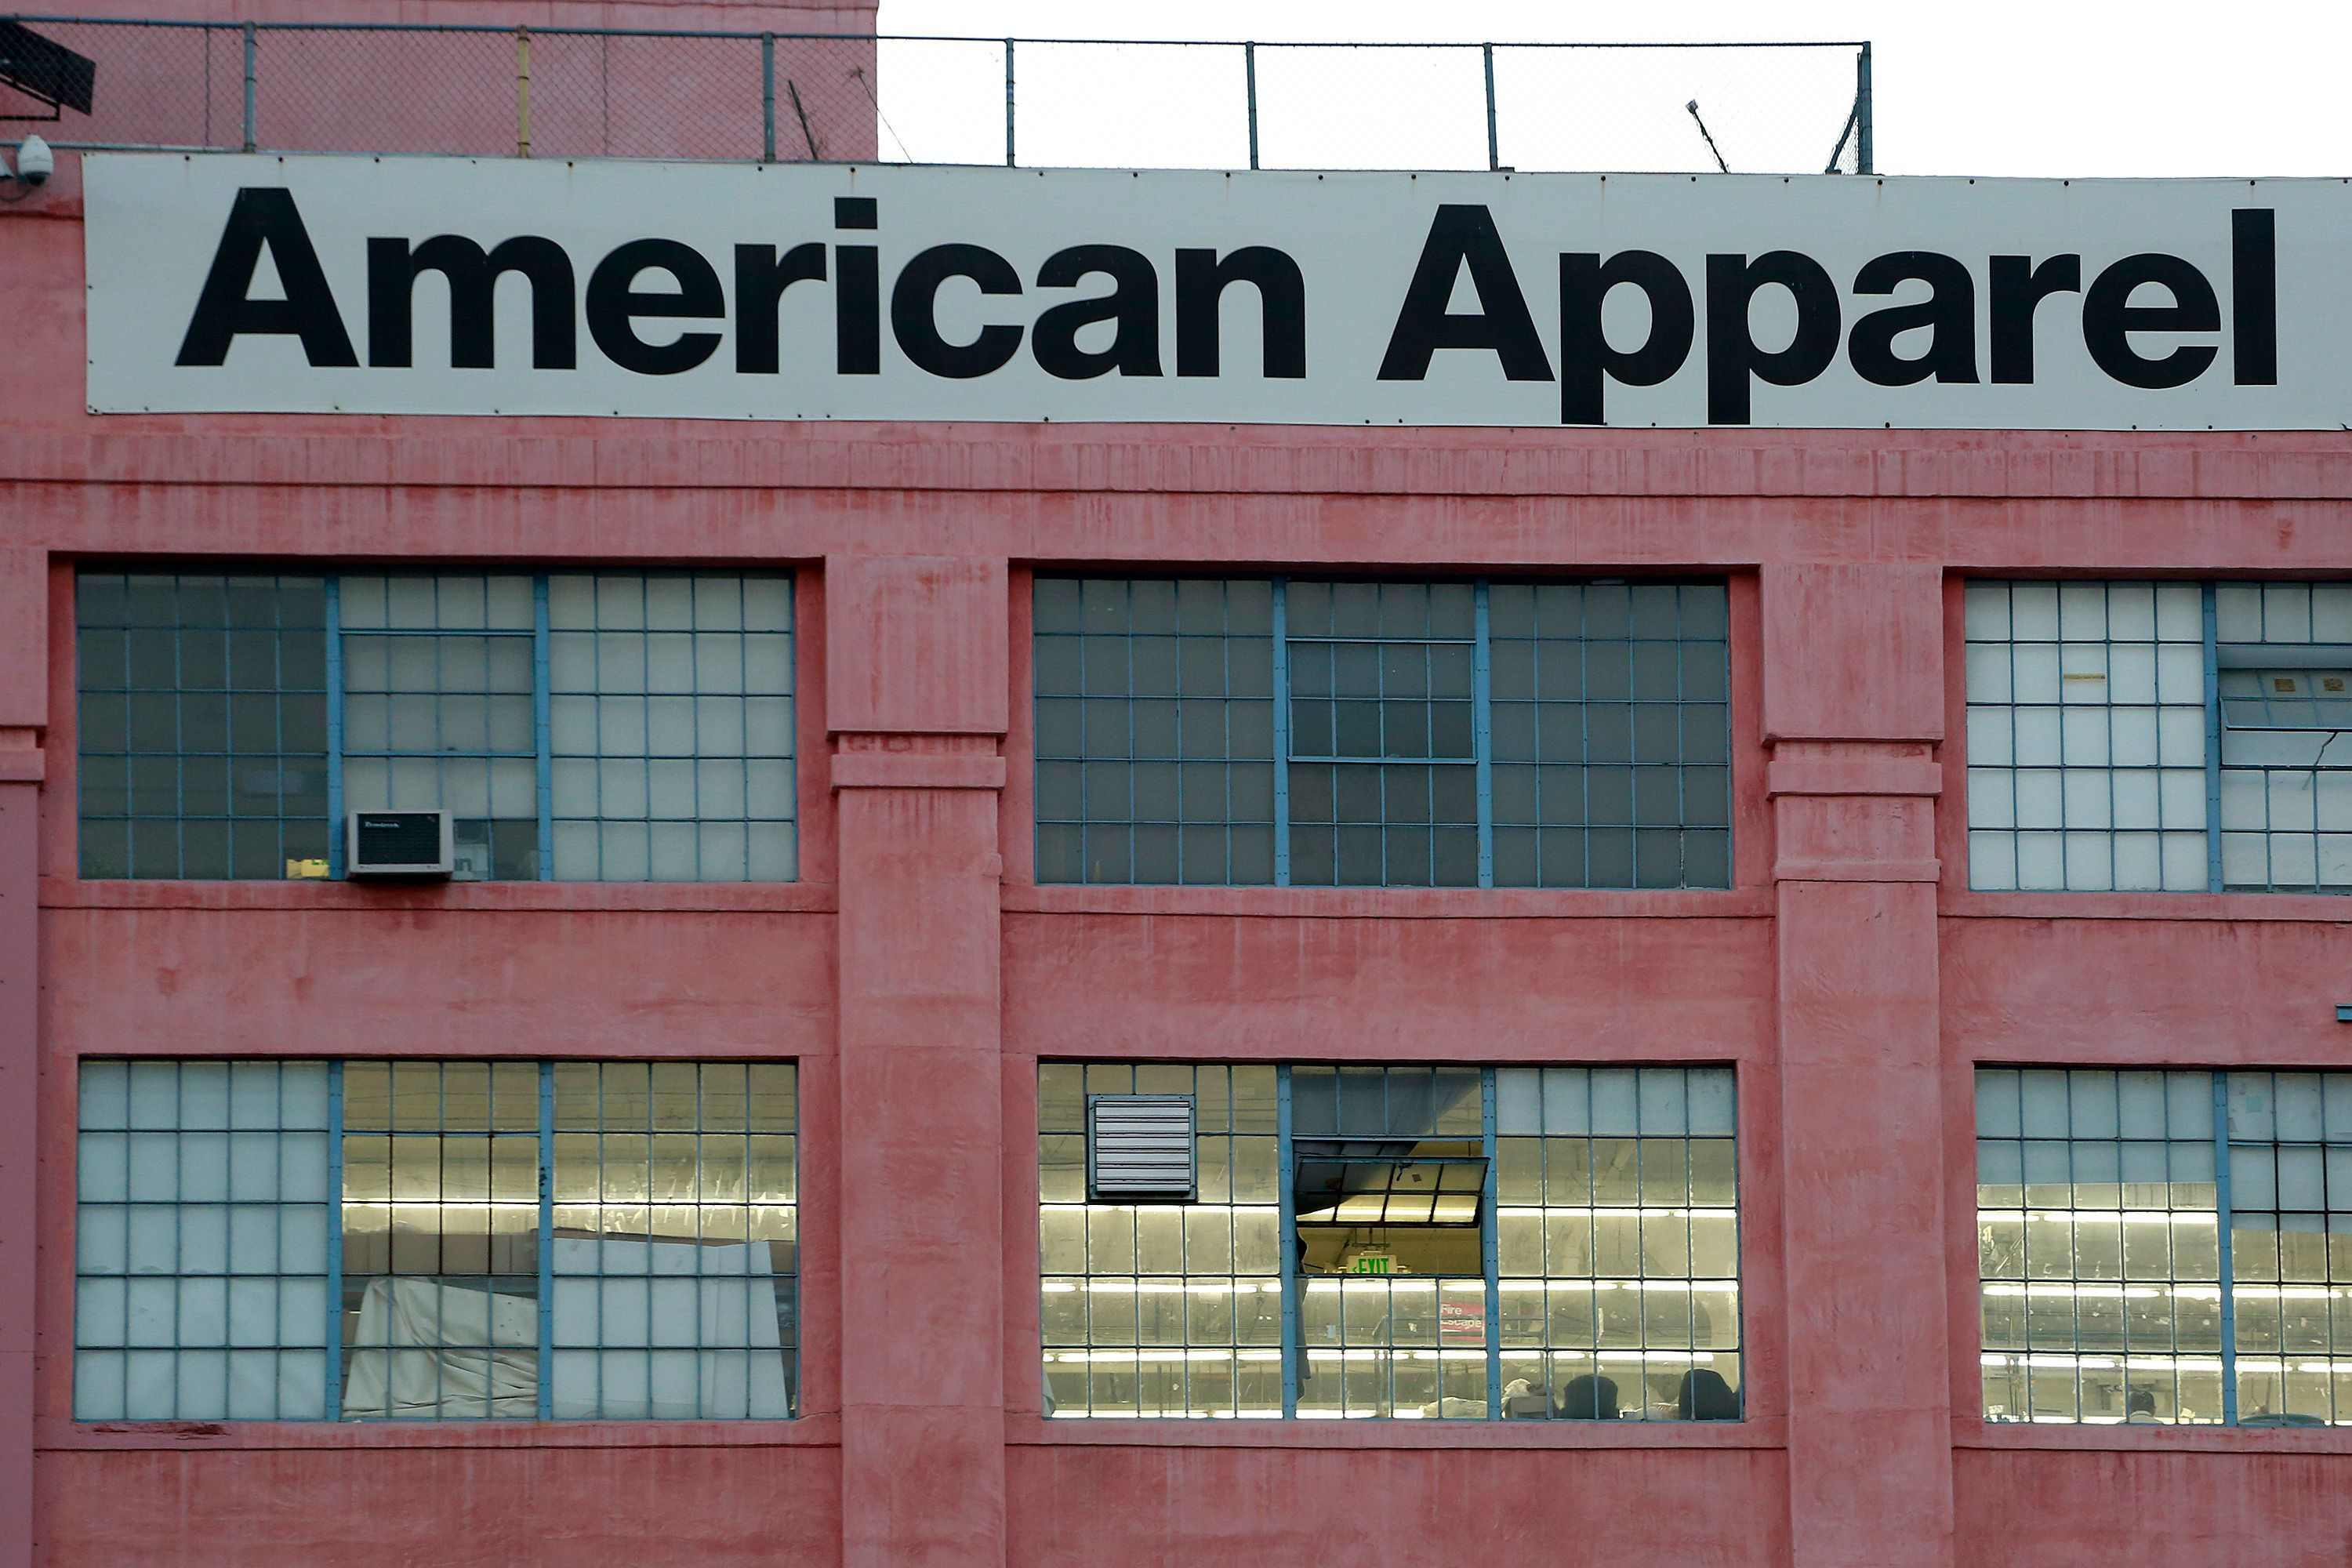 The American Apparel factory headquarters is pictured in Los Angeles, California July 7, 2014. Investment firm Standard General LP said Monday it gained voting control of ousted American Apparel Inc Chief Executive Officer Dov Charney's shares in the firm and will back the retailer in its battle against bankruptcy. REUTERS/Jonathan Alcorn  (UNITED STATES - Tags: BUSINESS)